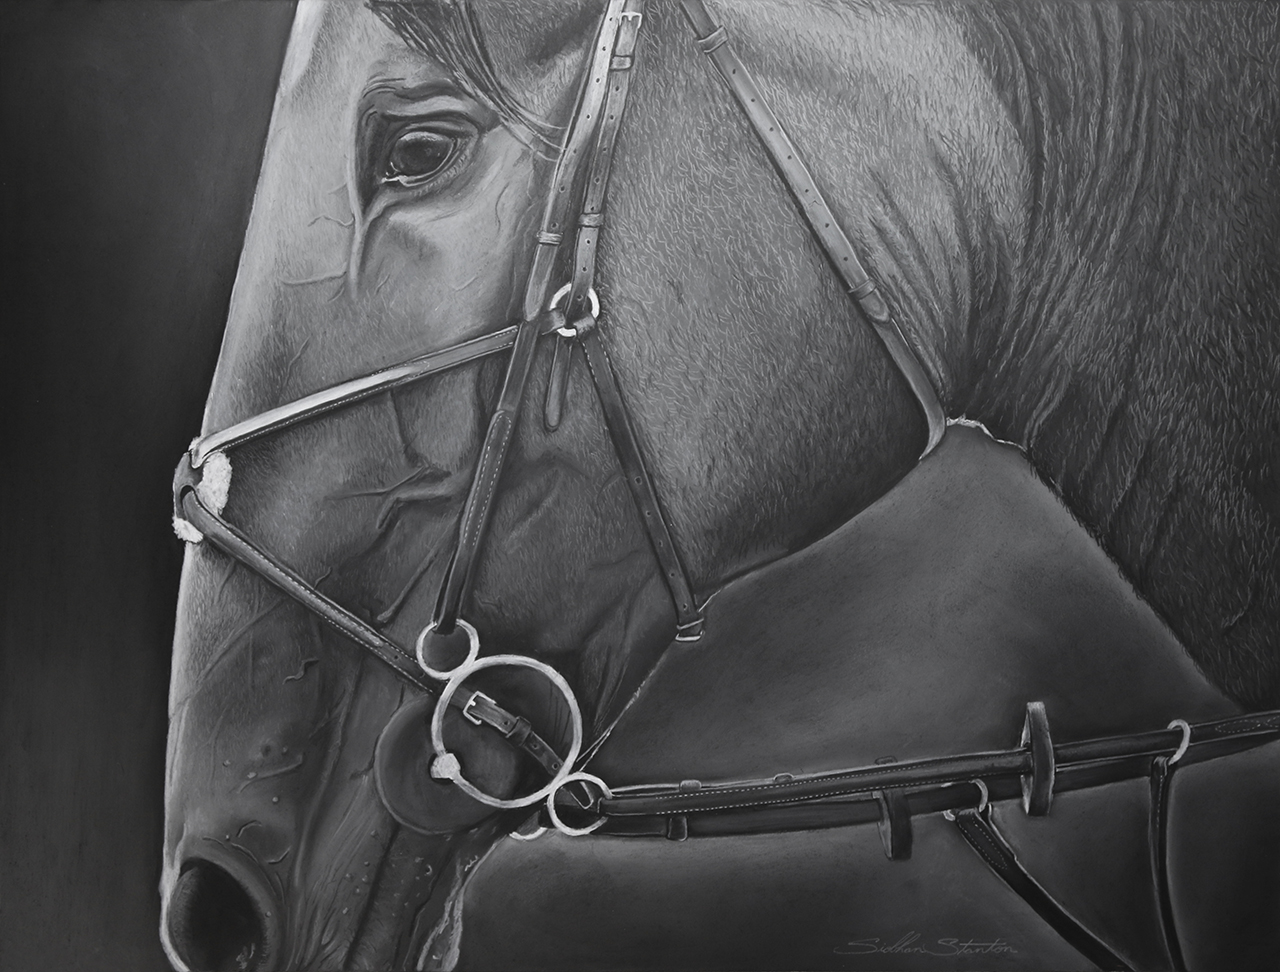 Siobhan Stanton - Charcoal Drawing, Hastings-on-Hudson, NY